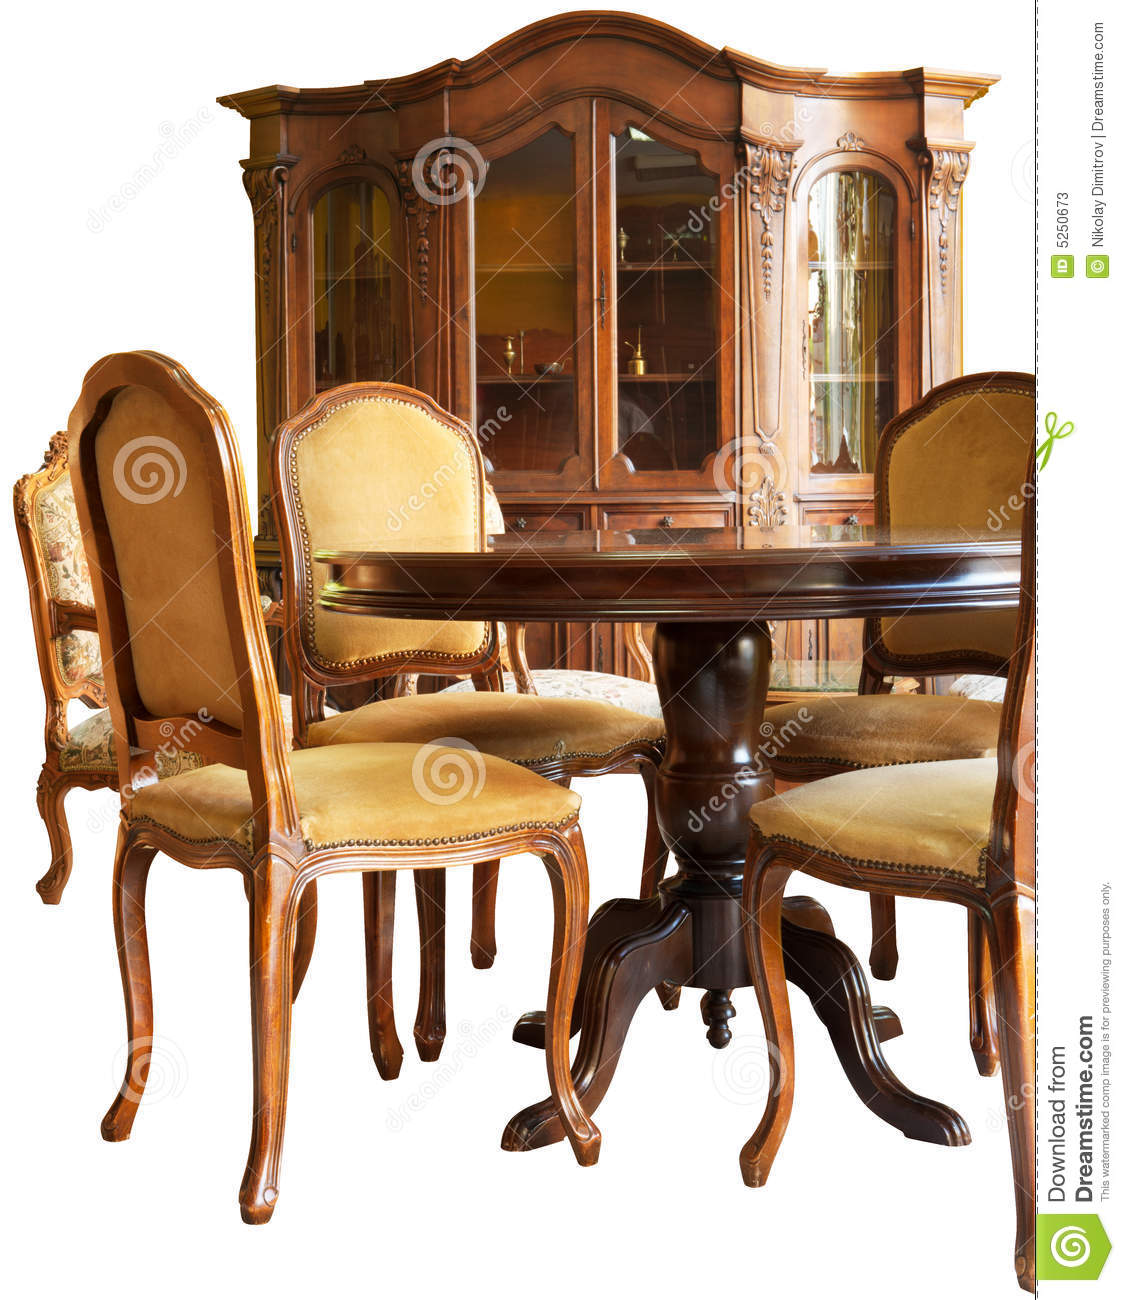 Old classic wooden furniture with handmade woodcar stock image image 5250673 Old wooden furniture